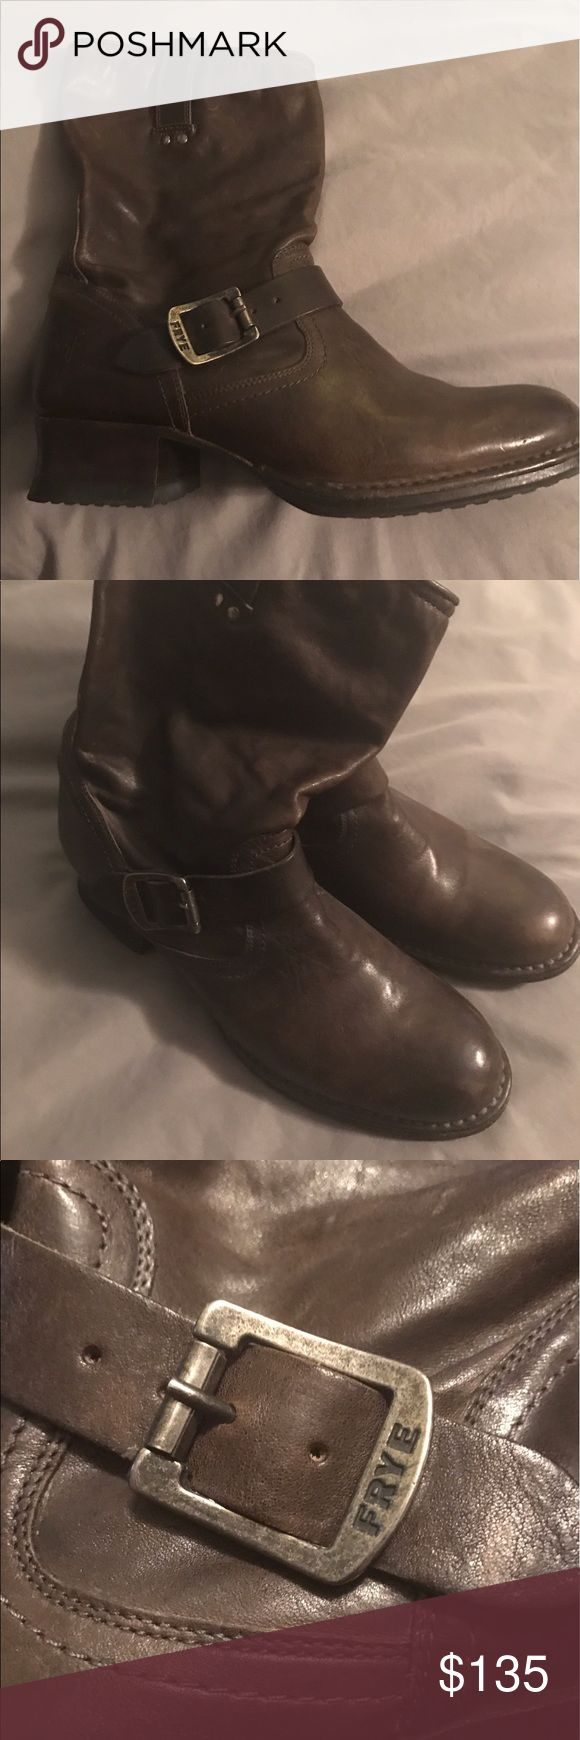 FRYE Slouch Boots!!!!❤️ Size 9, Dark Brown! These are a pair of Veronica dark brown slouch boots!  Only worn a couple of times!!! Frye Shoes Combat & Moto Boots